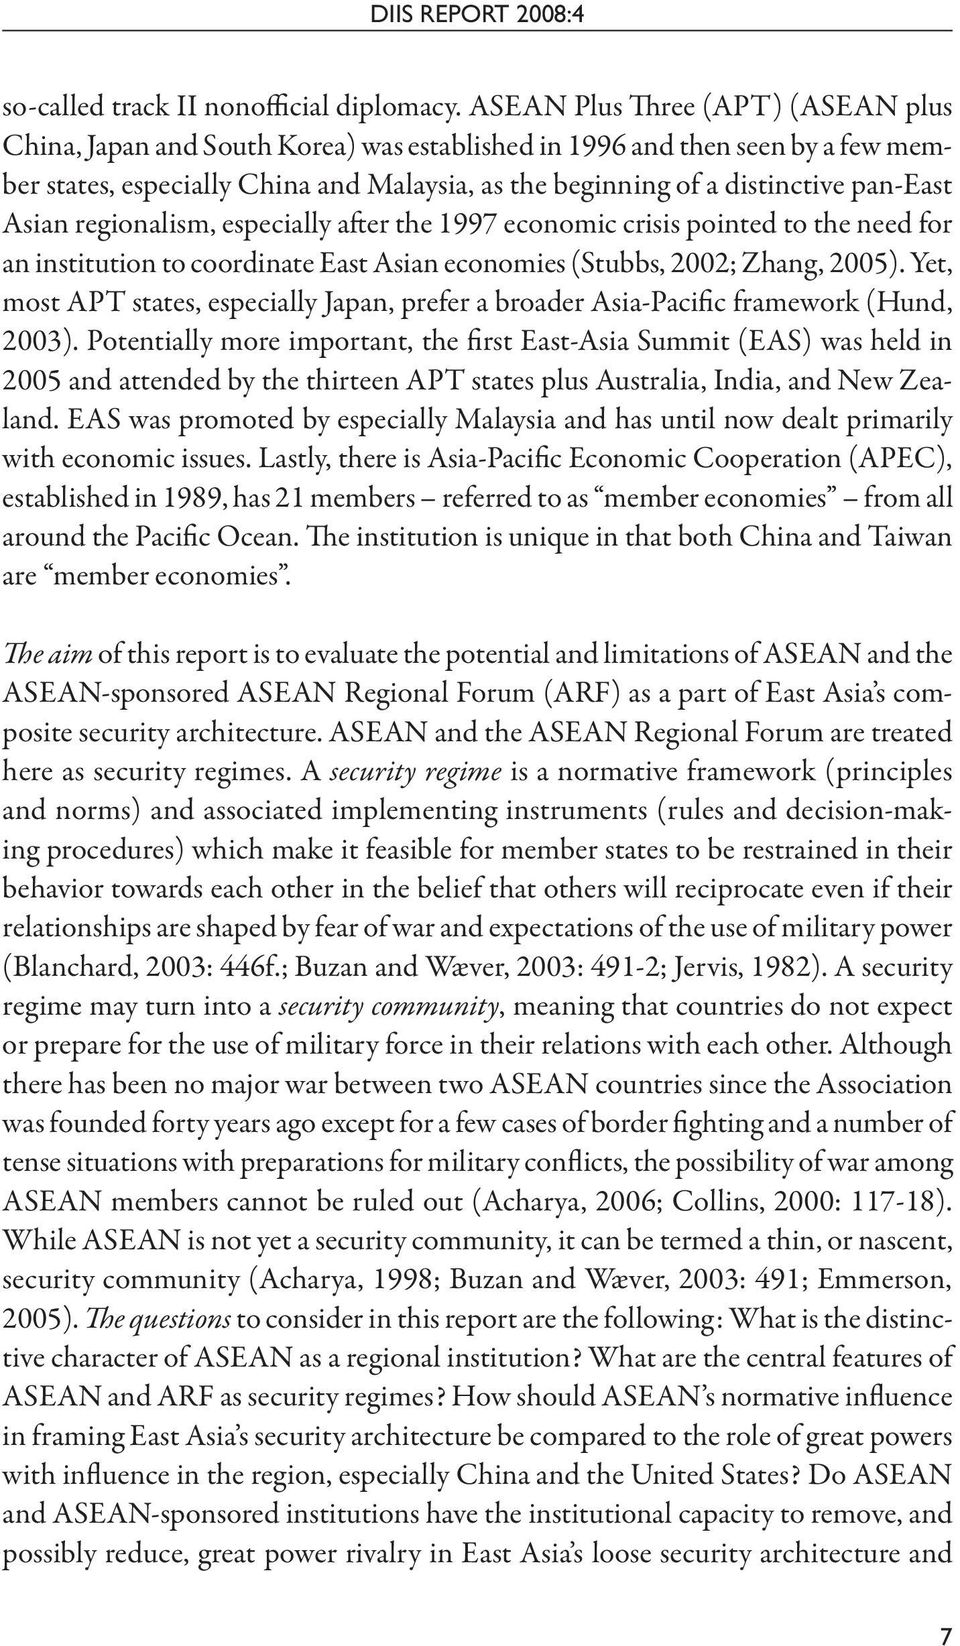 pan-east Asian regionalism, especially after the 1997 economic crisis pointed to the need for an institution to coordinate East Asian economies (Stubbs, 2002; Zhang, 2005).